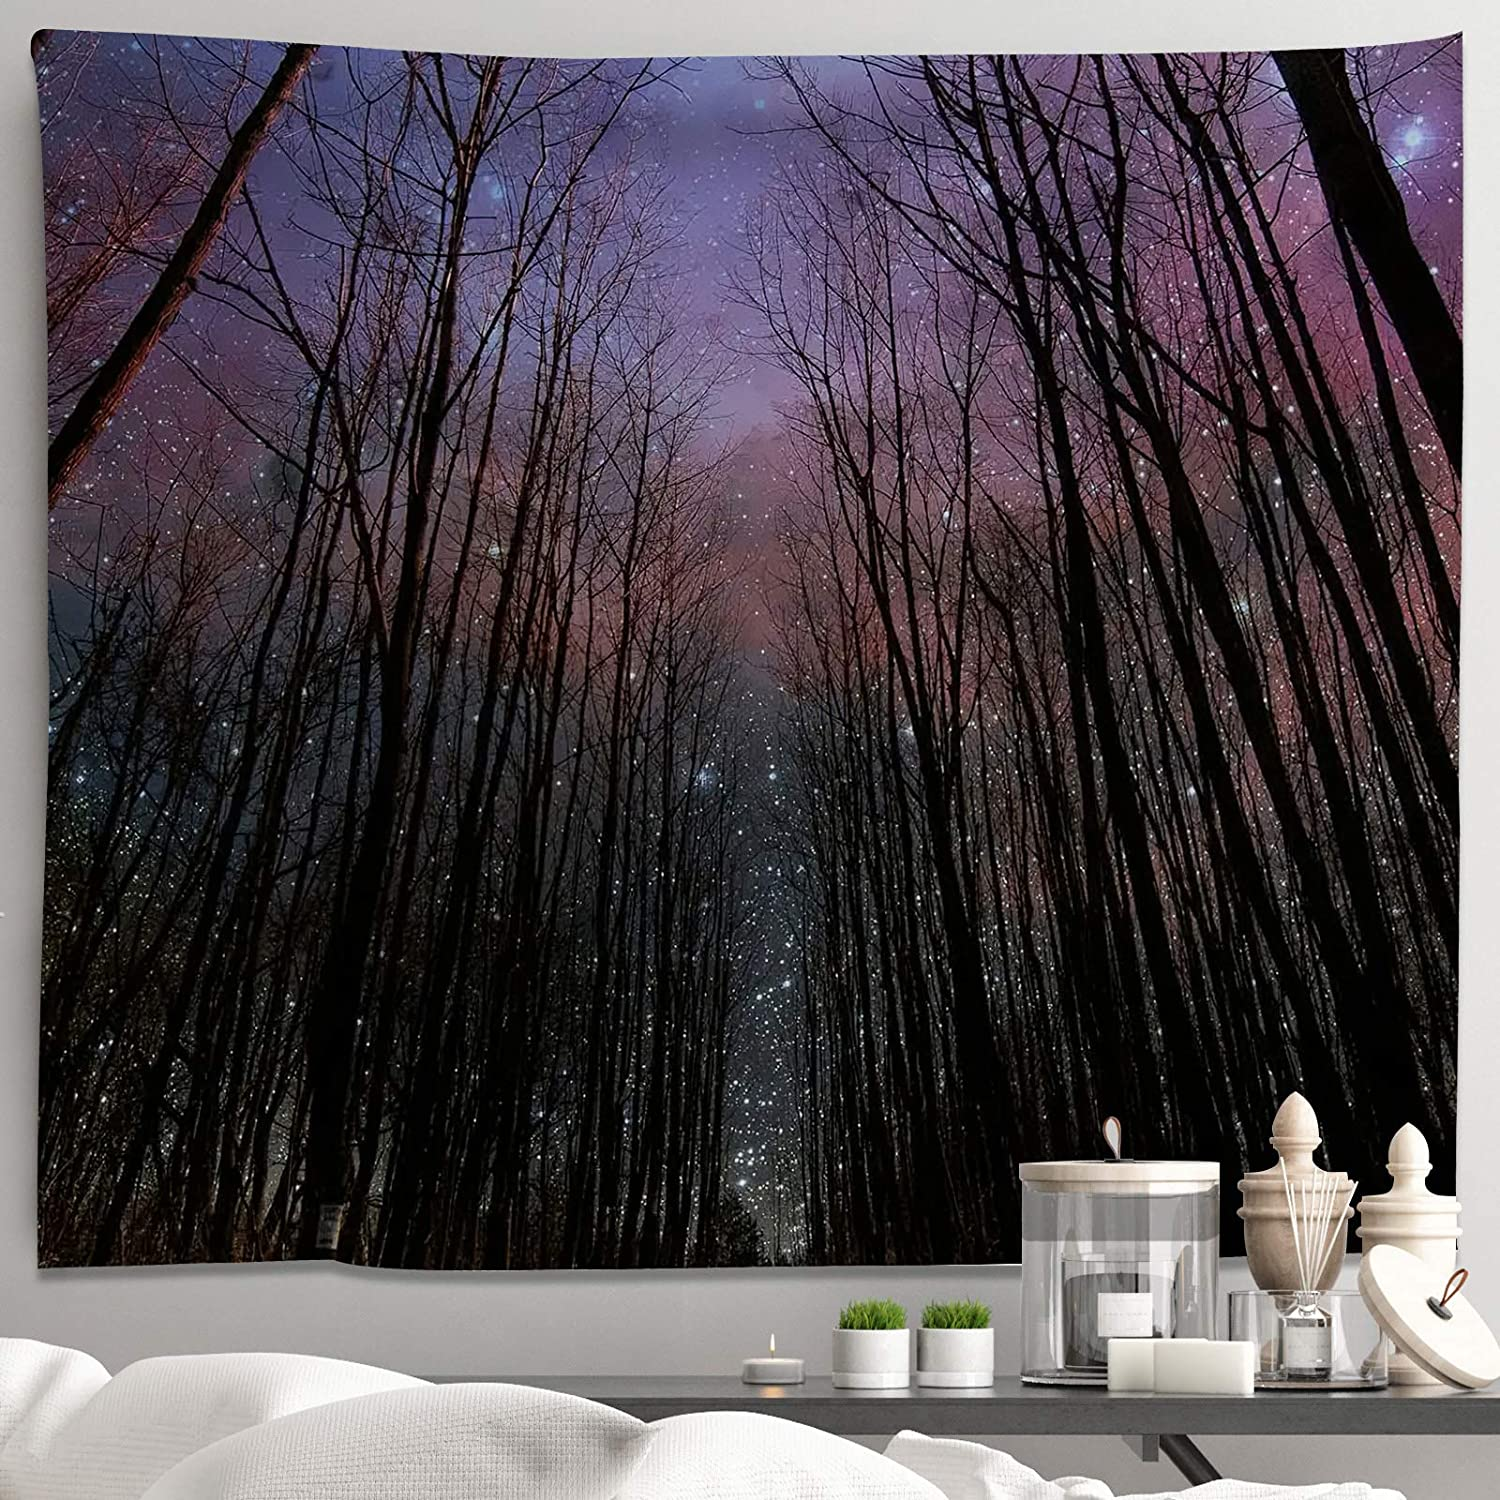 Night Forest Tapestry Wall Hanging Nature Landscape Tapestry Through Starry Night SkyTree Tapestries for Bedroom Living Room Dorm Decor(H51.2×W59.1)